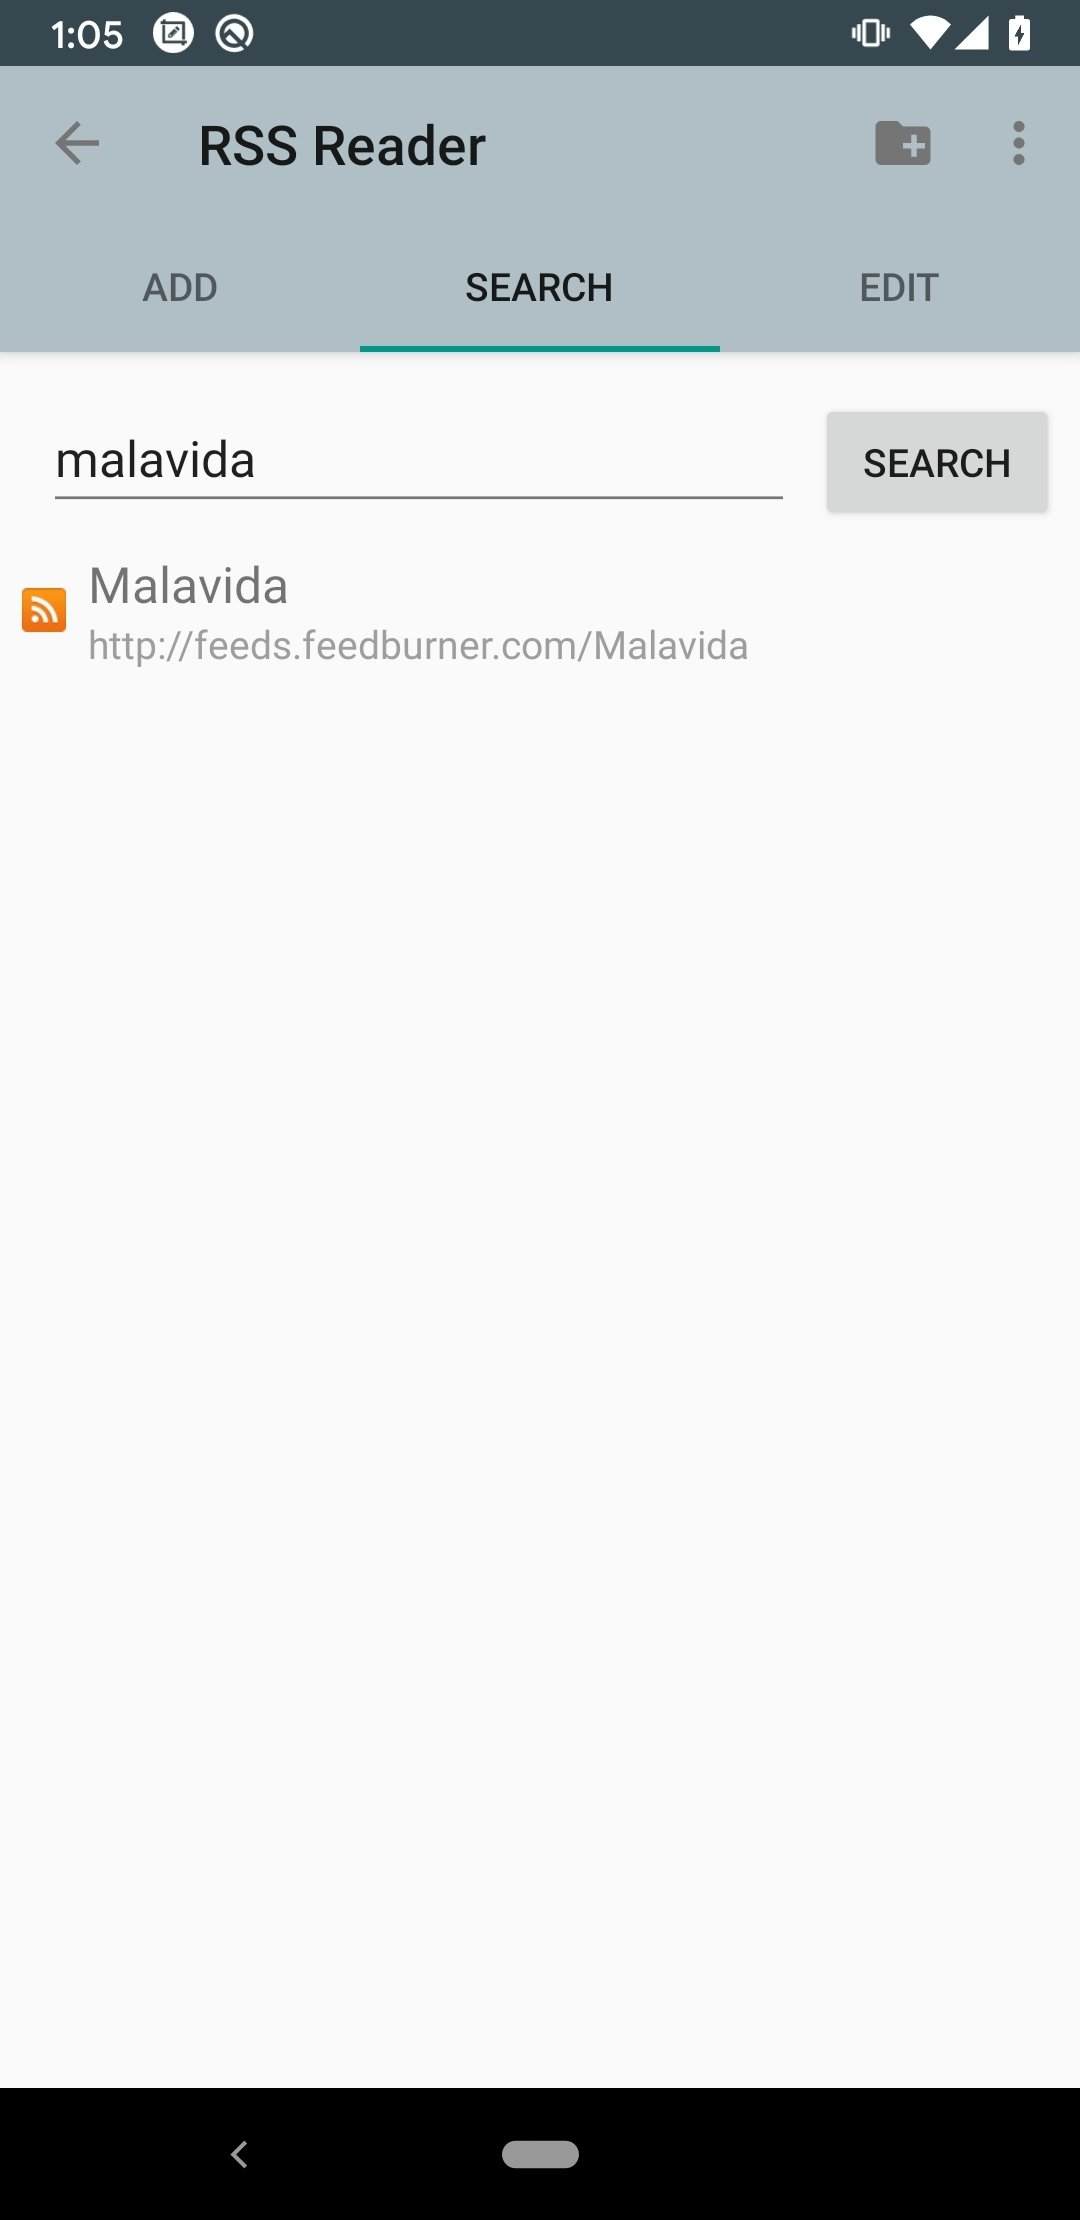 RSS Reader Android image 5